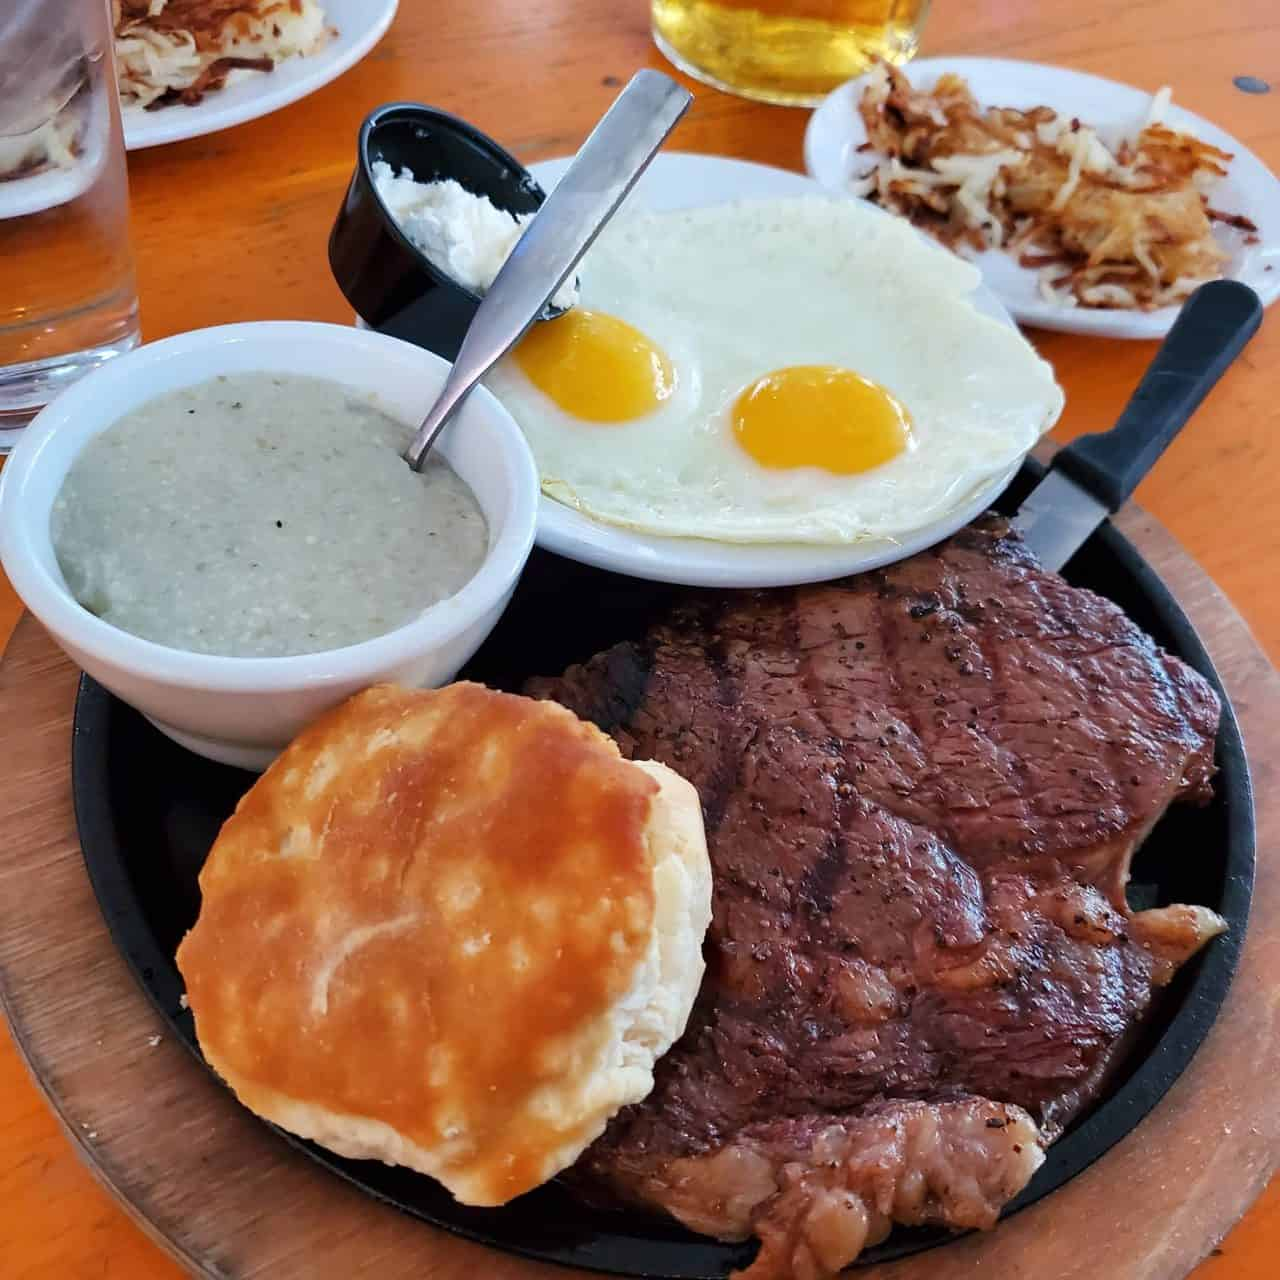 Krause's Cafe in New Braunfels